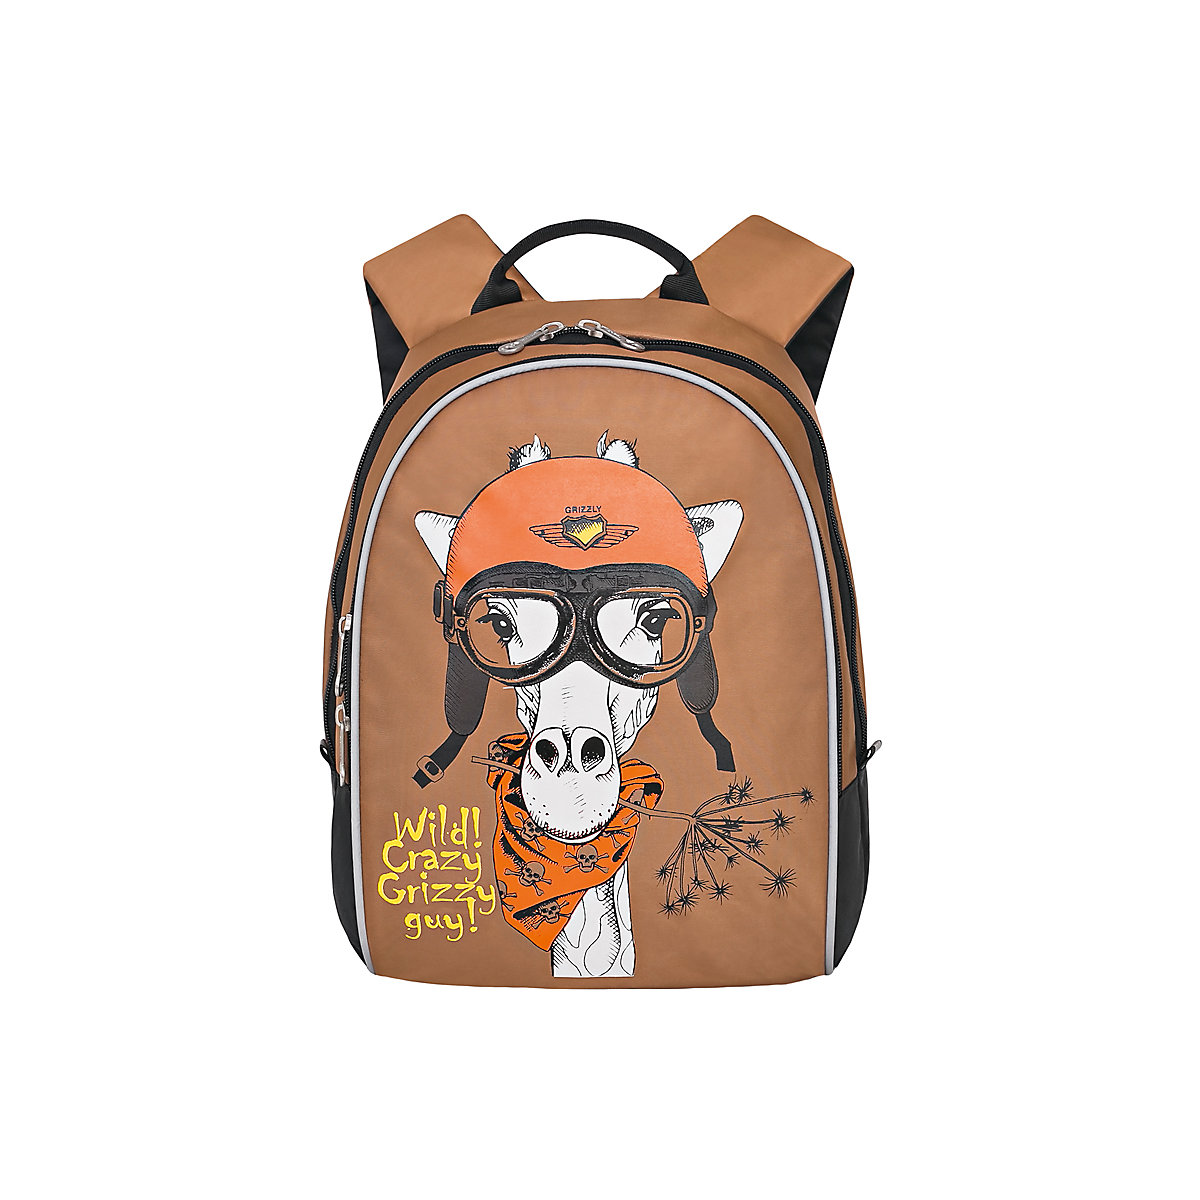 GRIZZLY School Bags 11863886 schoolbag backpack orthopedic bag for boy and girl animals 2017 nylon fashion backpacks women young ladies backpack girl student school bag for laptop travel bag black mochilas hot sale